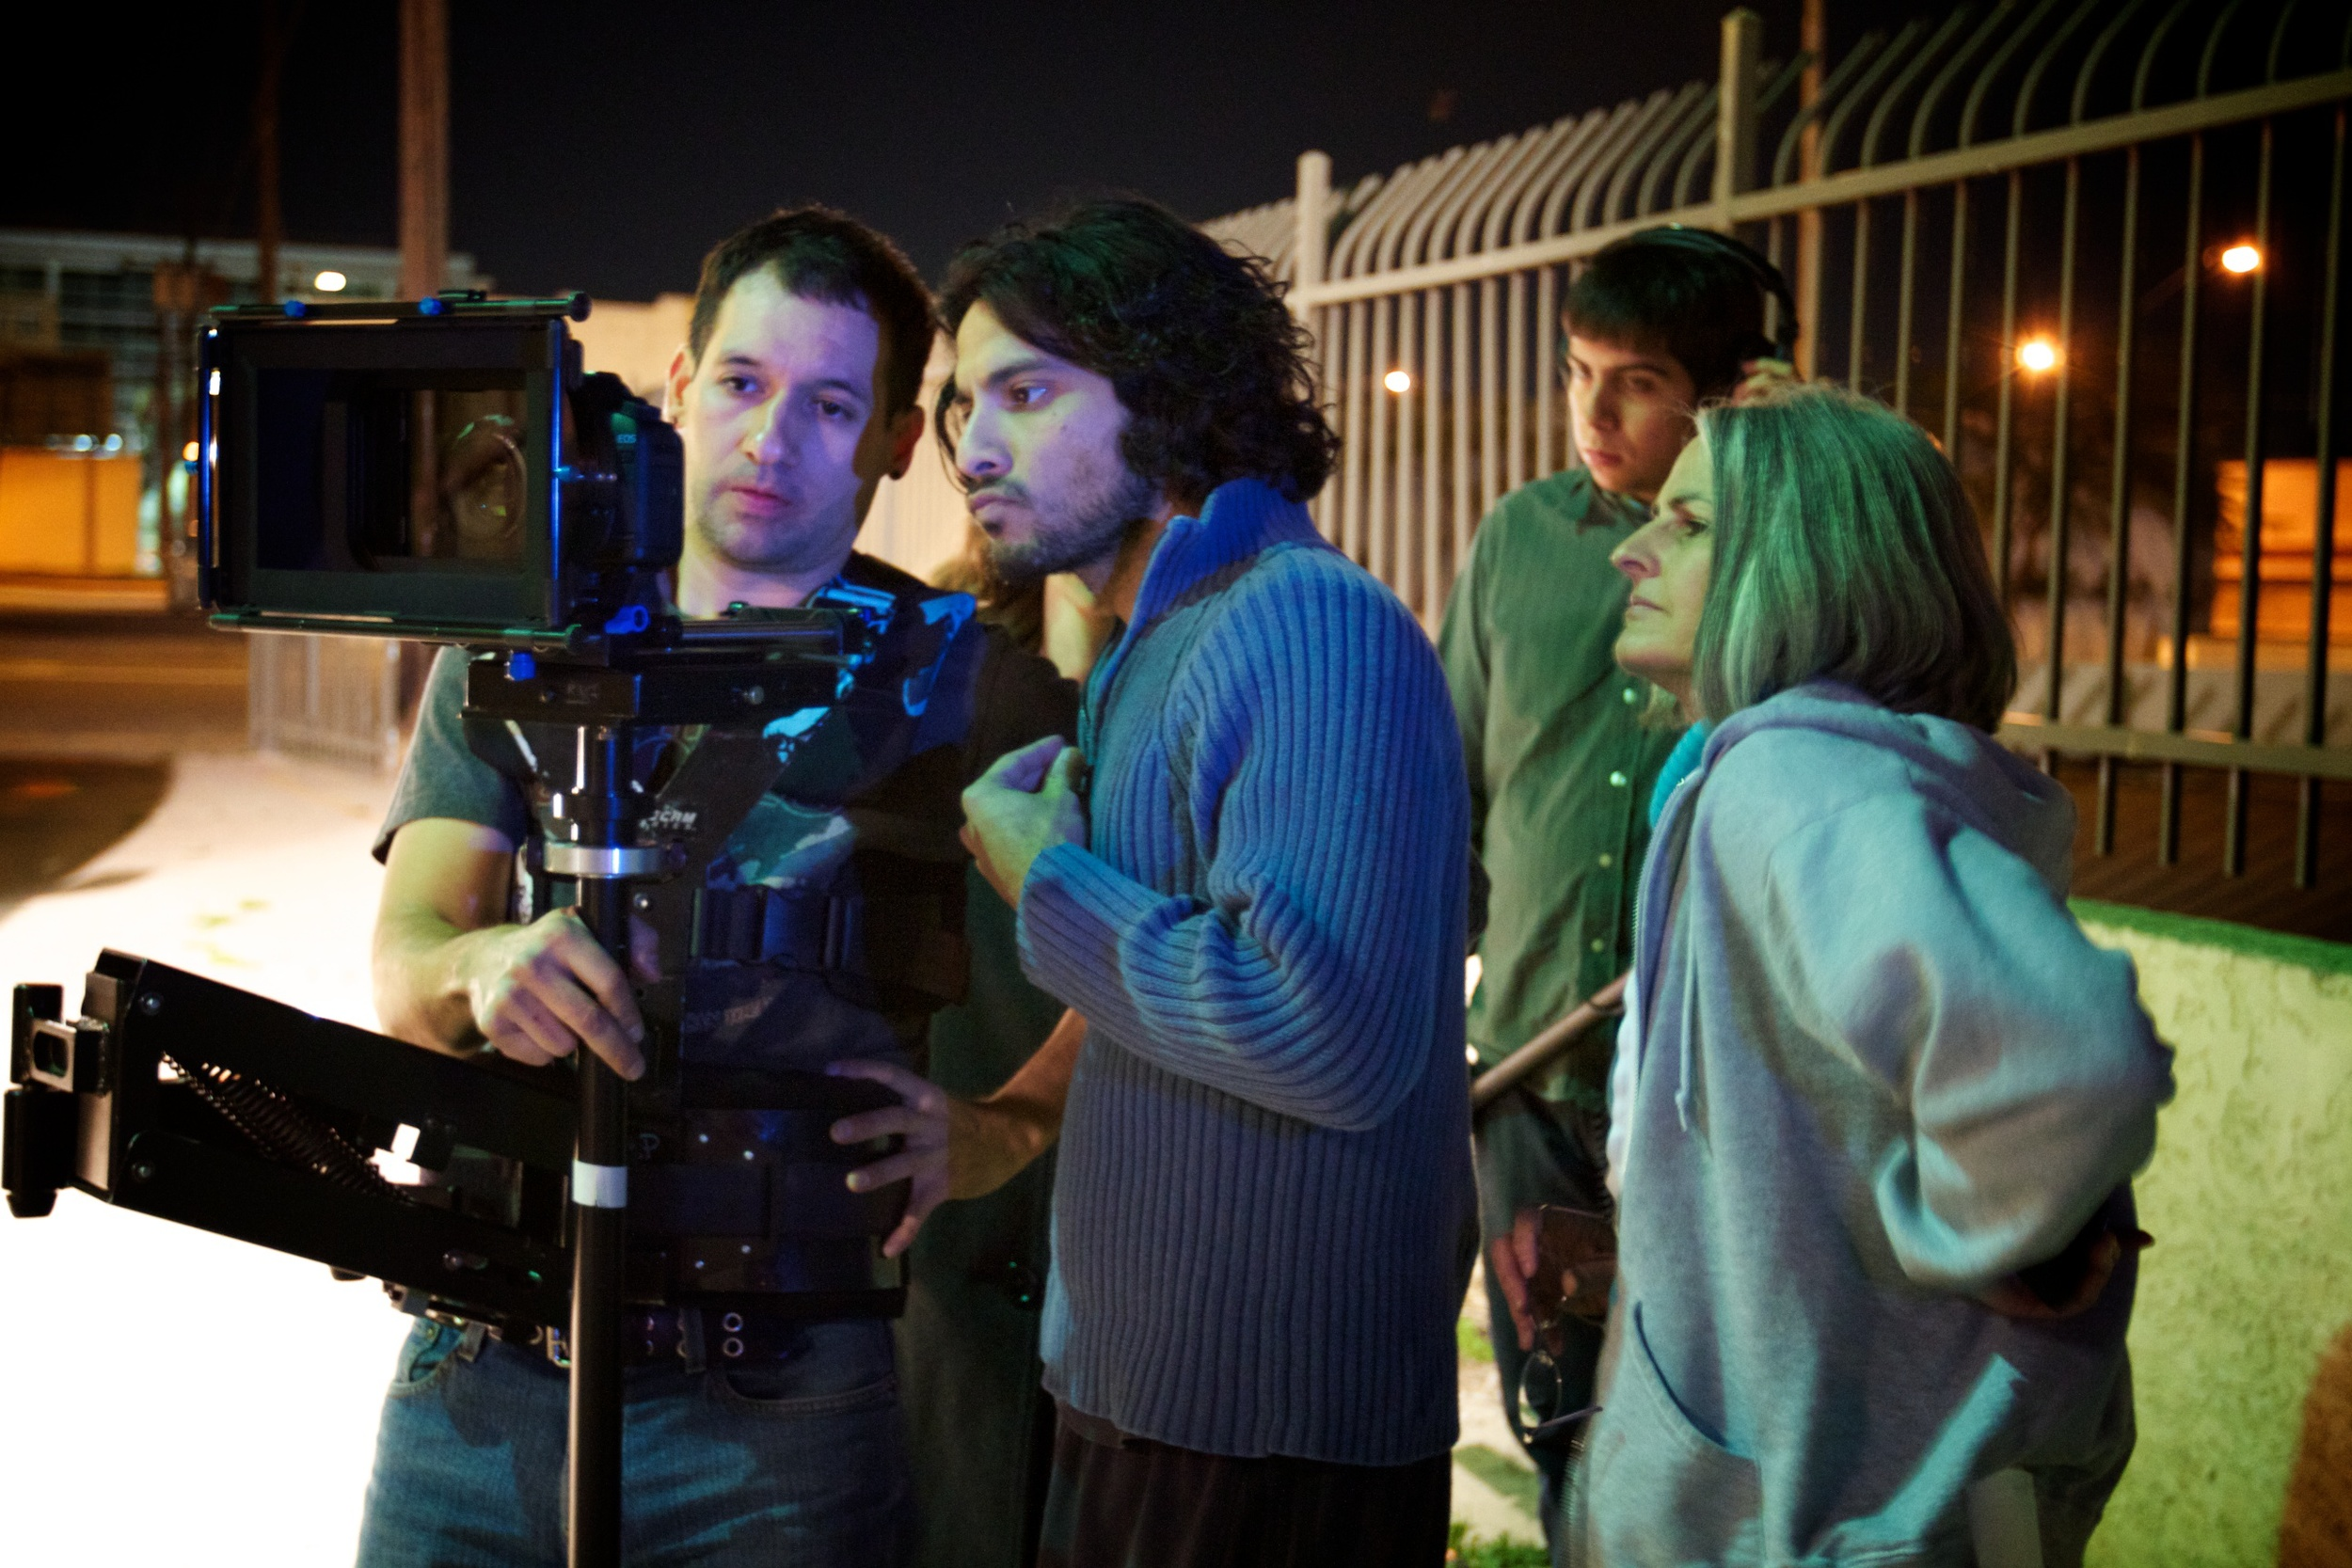 On_Set_Paranoia_Motion_Picture_2011-03-01_RMH_©2011_Biswas-Dresback_LLC_3520.jpg